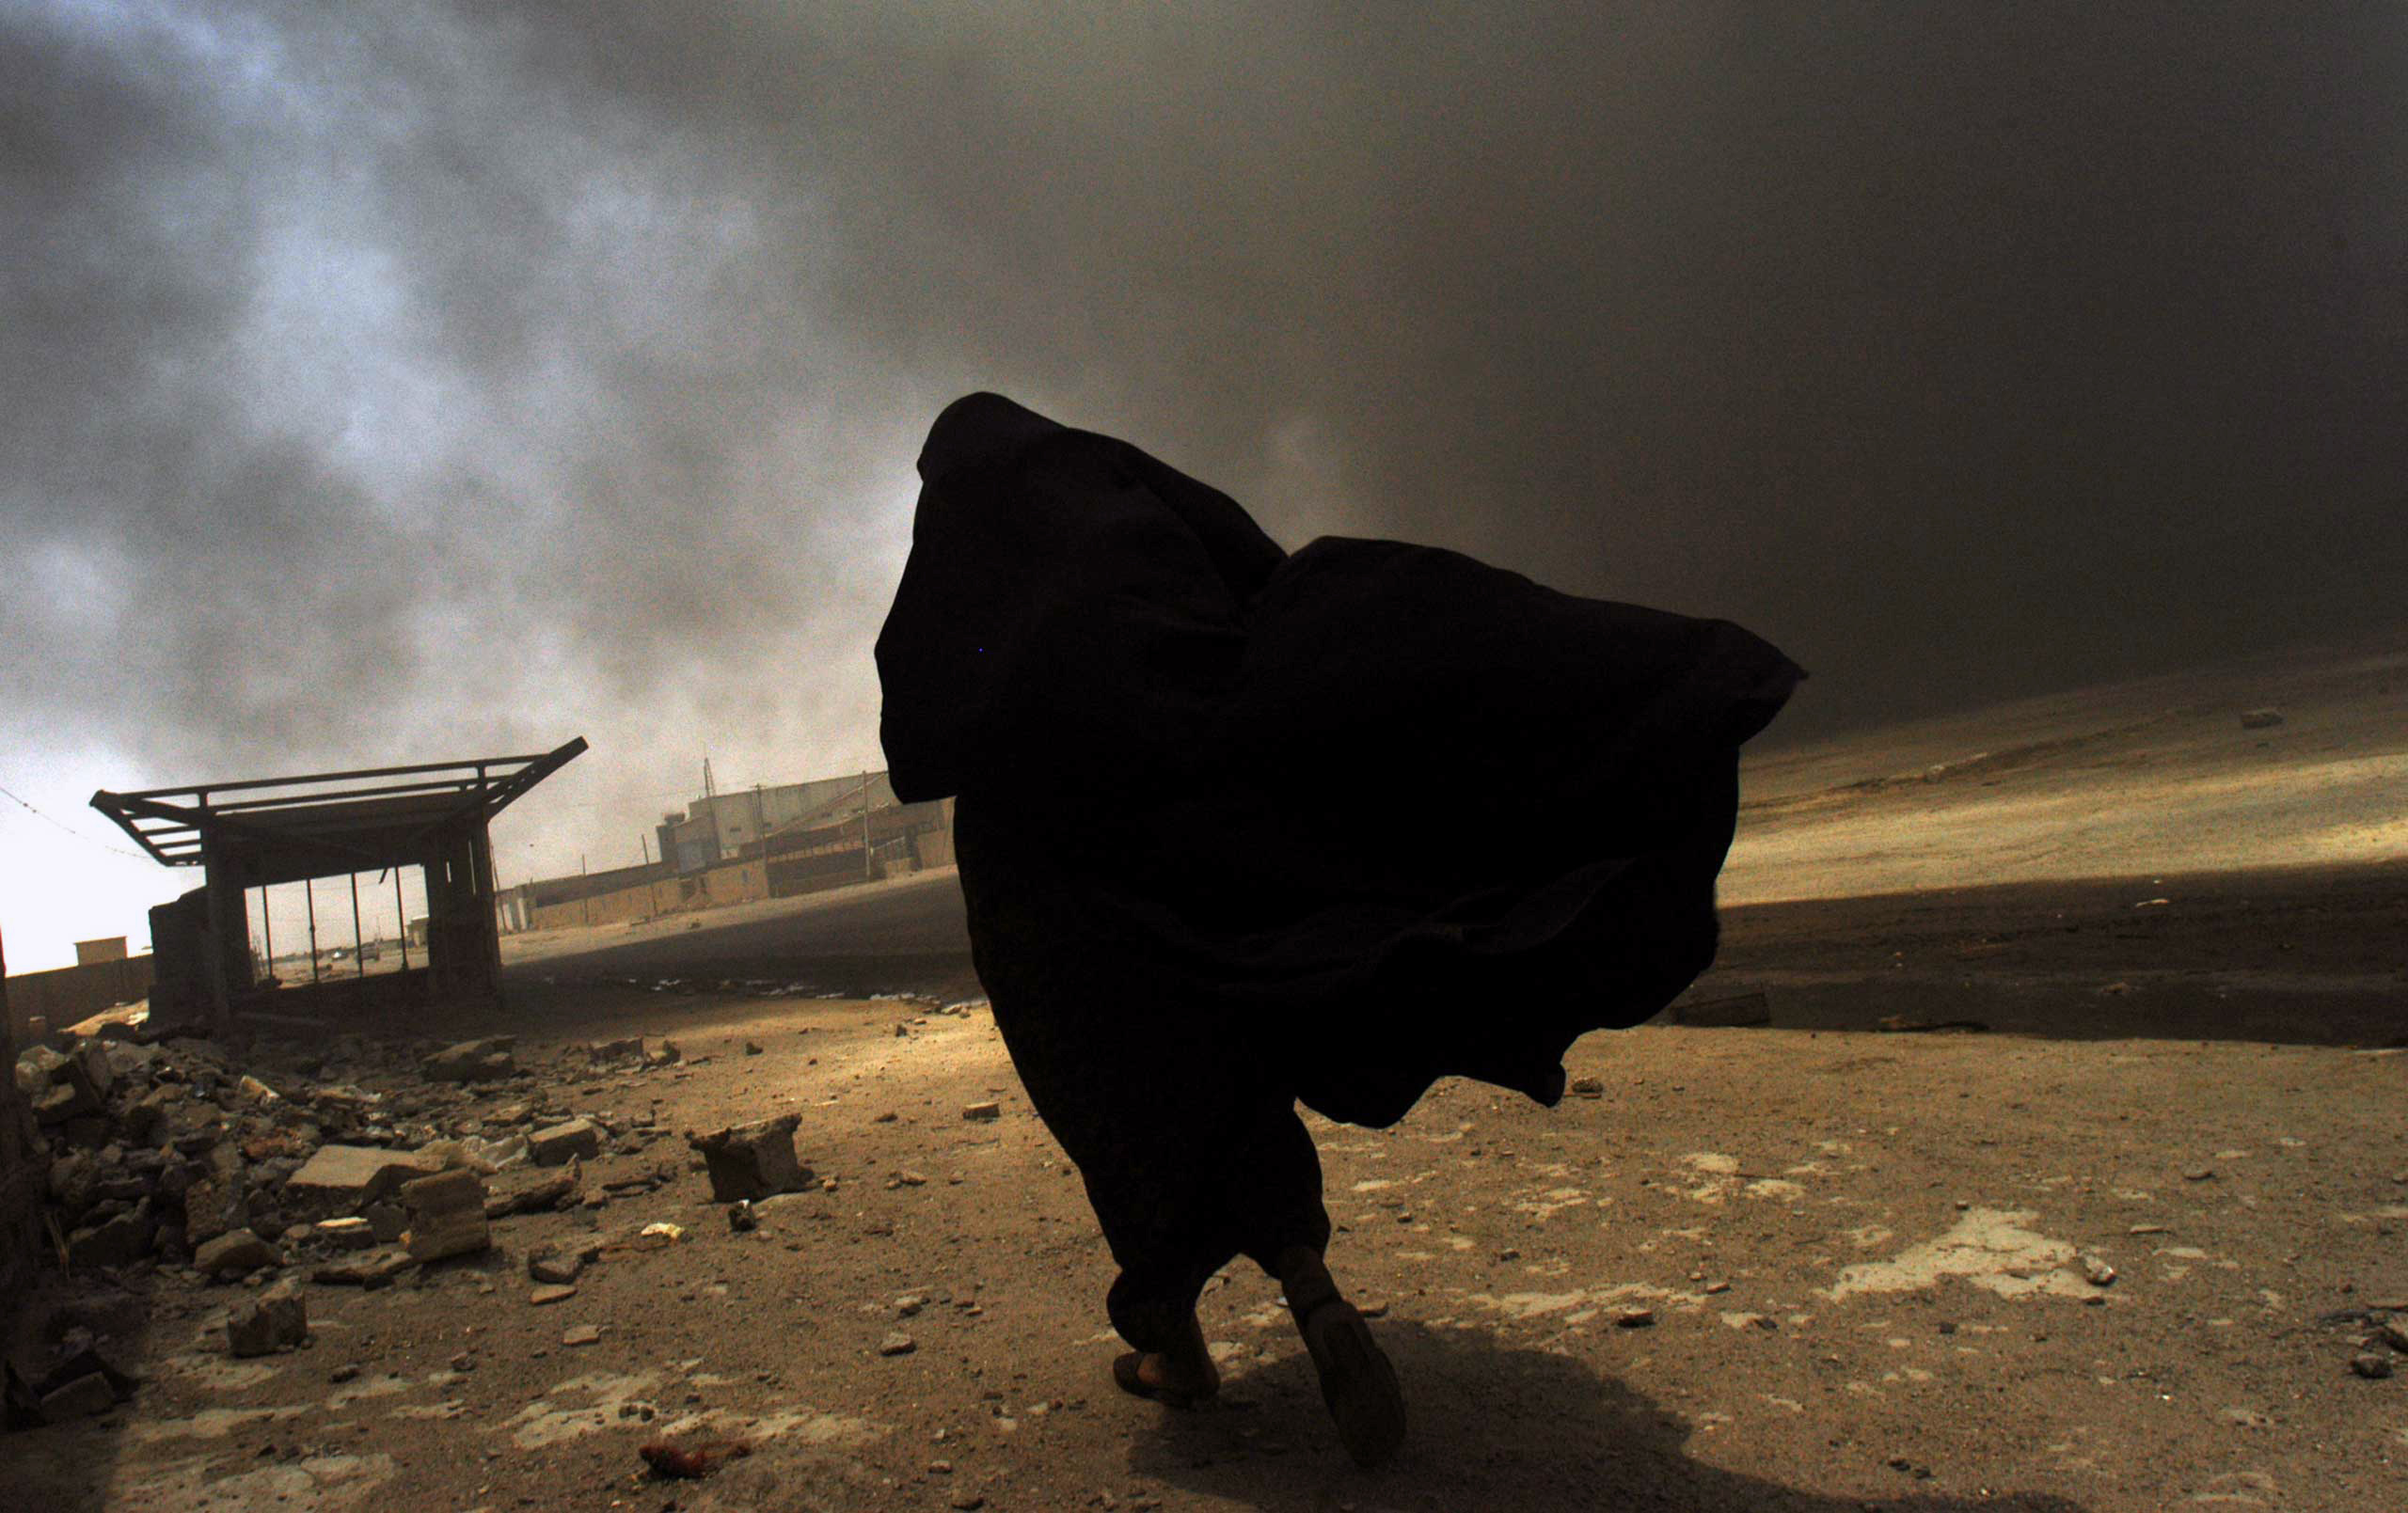 American Photo: The Influencers: Lynsey AddarioAn Iraqi woman walks through a plume of smoke rising from a massive fire at a liquid gas factory as she searches for her husband in the vicinity of the fire in Basra, Iraq, May 26, 2003.